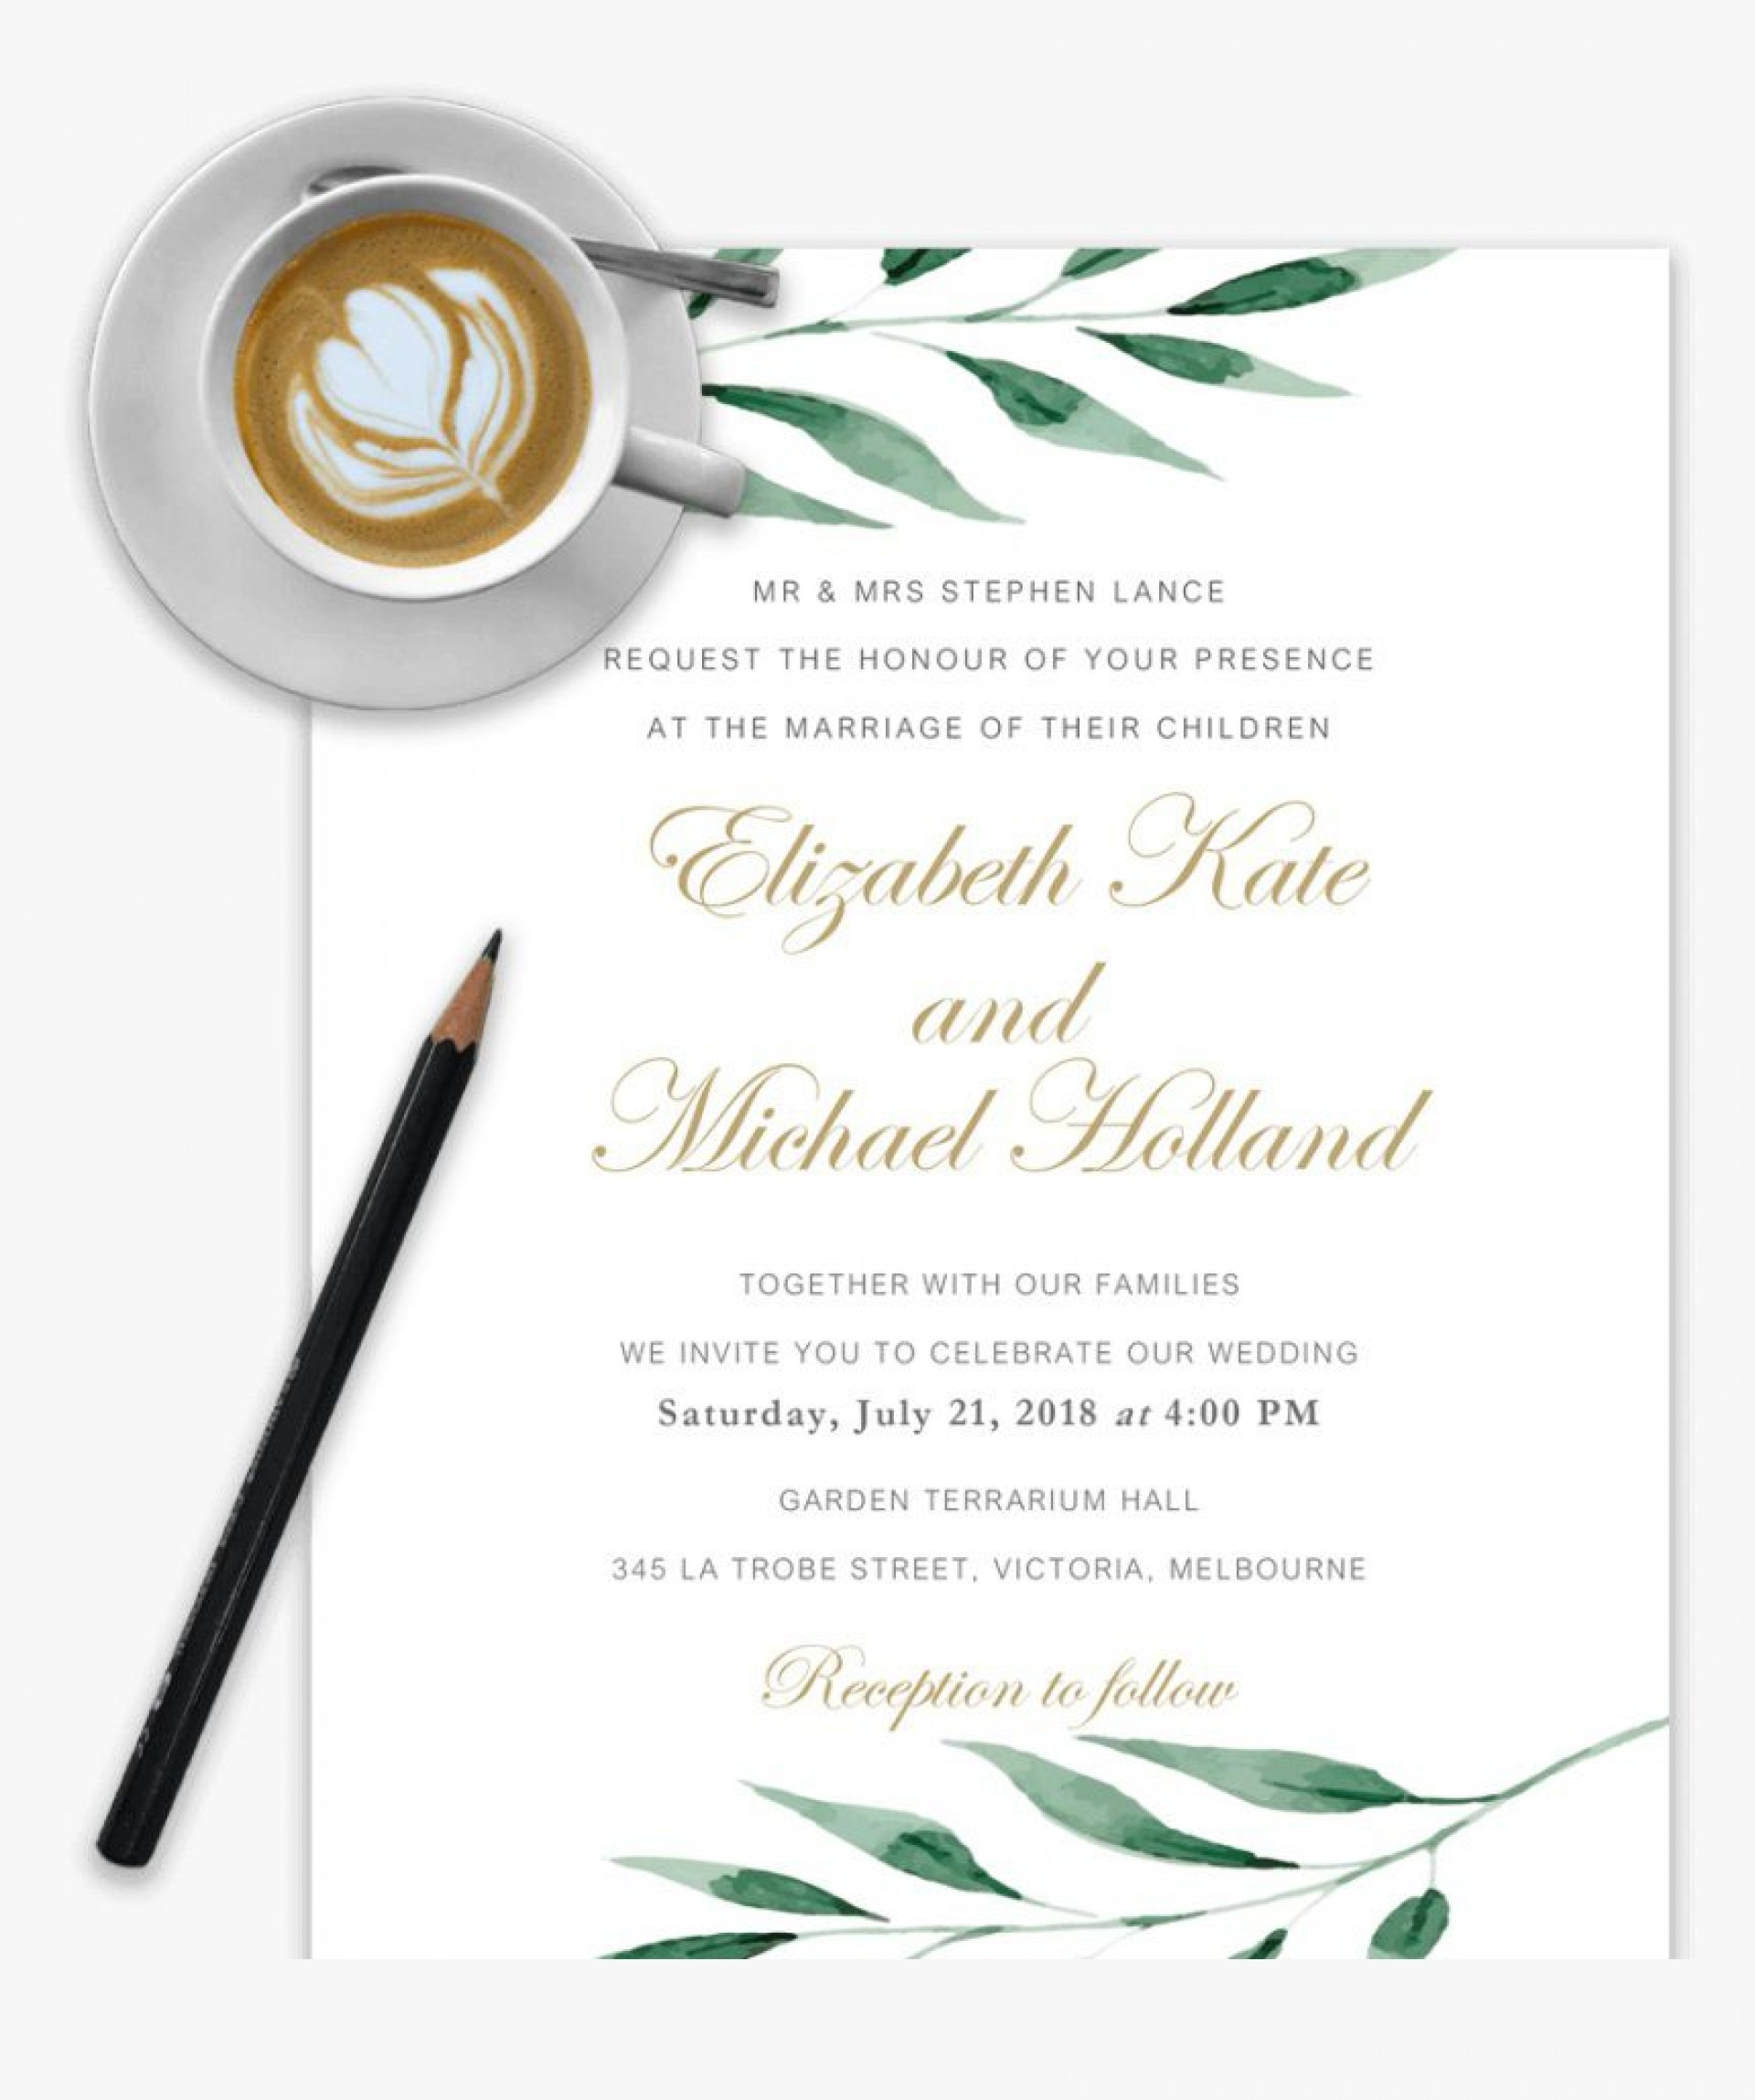 003 Staggering Free Invitation Template Word Image  Wedding For Tamil Christma Party1920